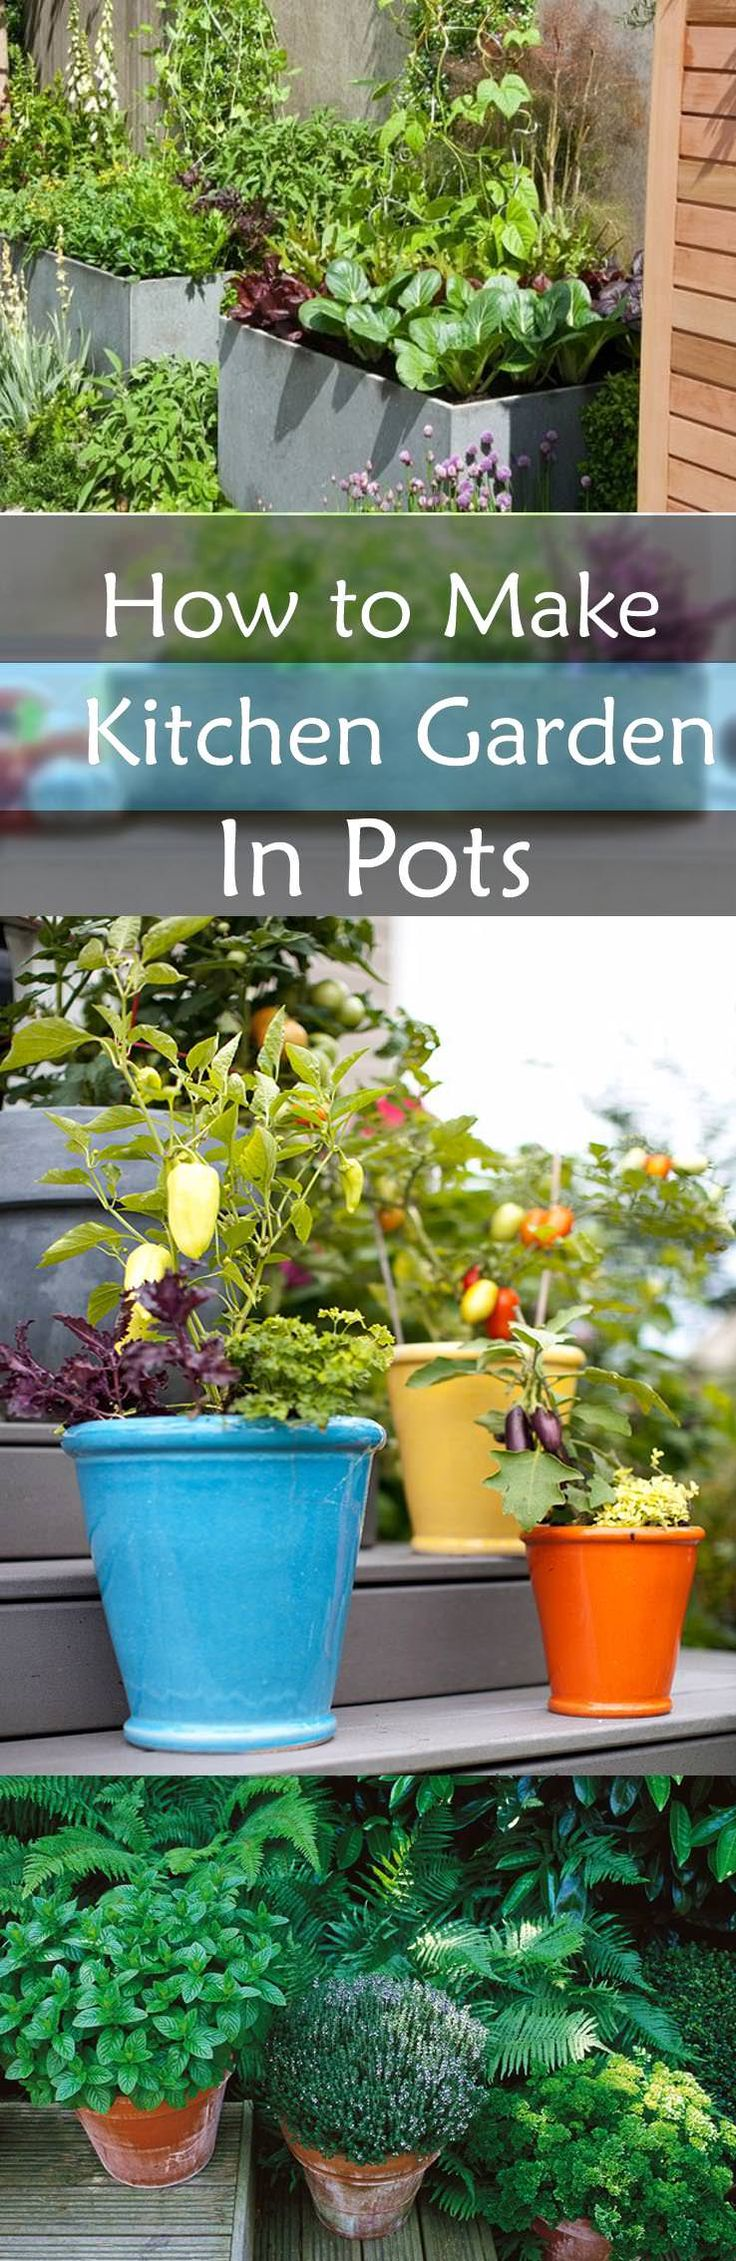 Garden Ideas 2015 best 20+ kitchen garden ideas ideas on pinterest | potager garden